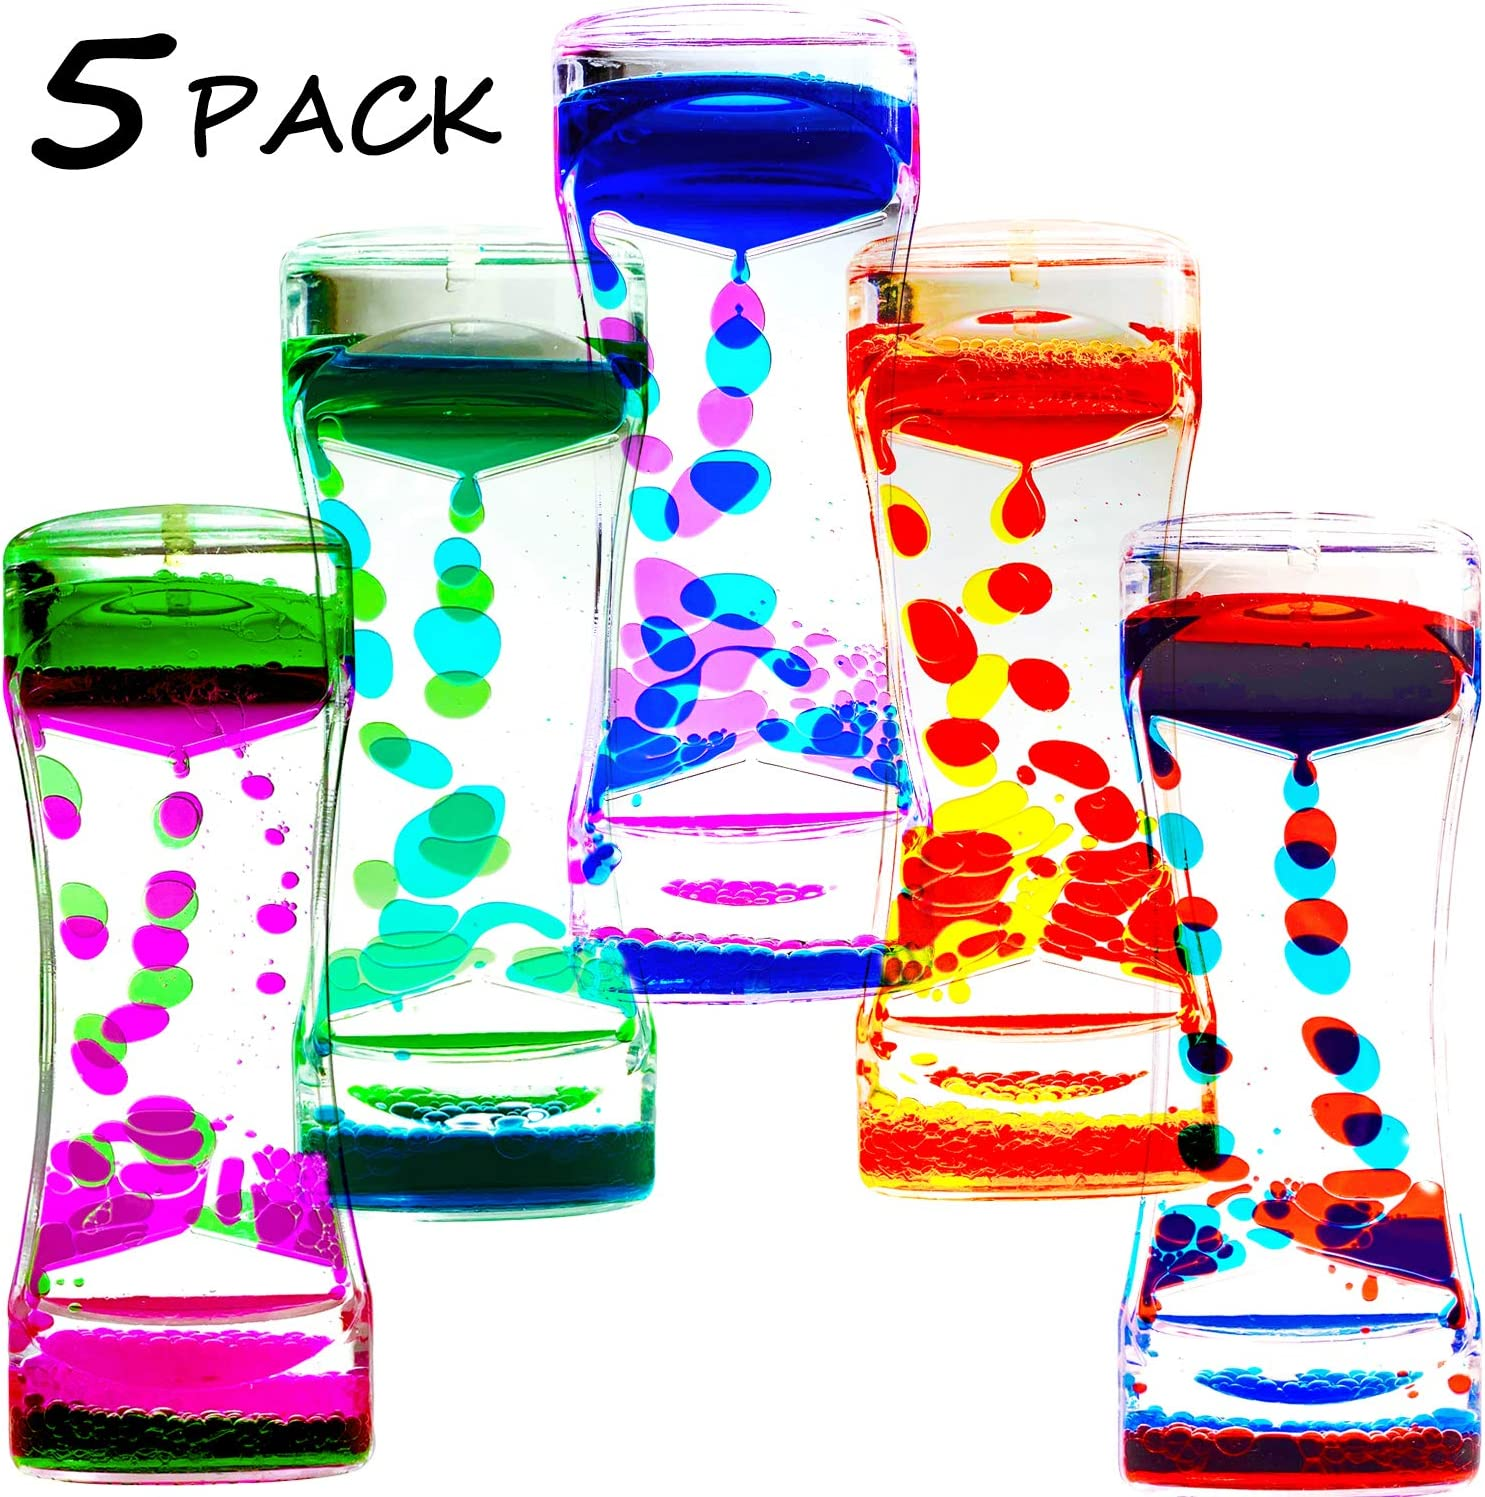 OCTTN Liquid Motion Timer Bubbler for Kids and Adults, 5 Pack Desktop Sensory Toy for Relaxation, Fidget Toy , Stress Relief and Anxiety Relief, Relaxing, Autism, ADHD Toys